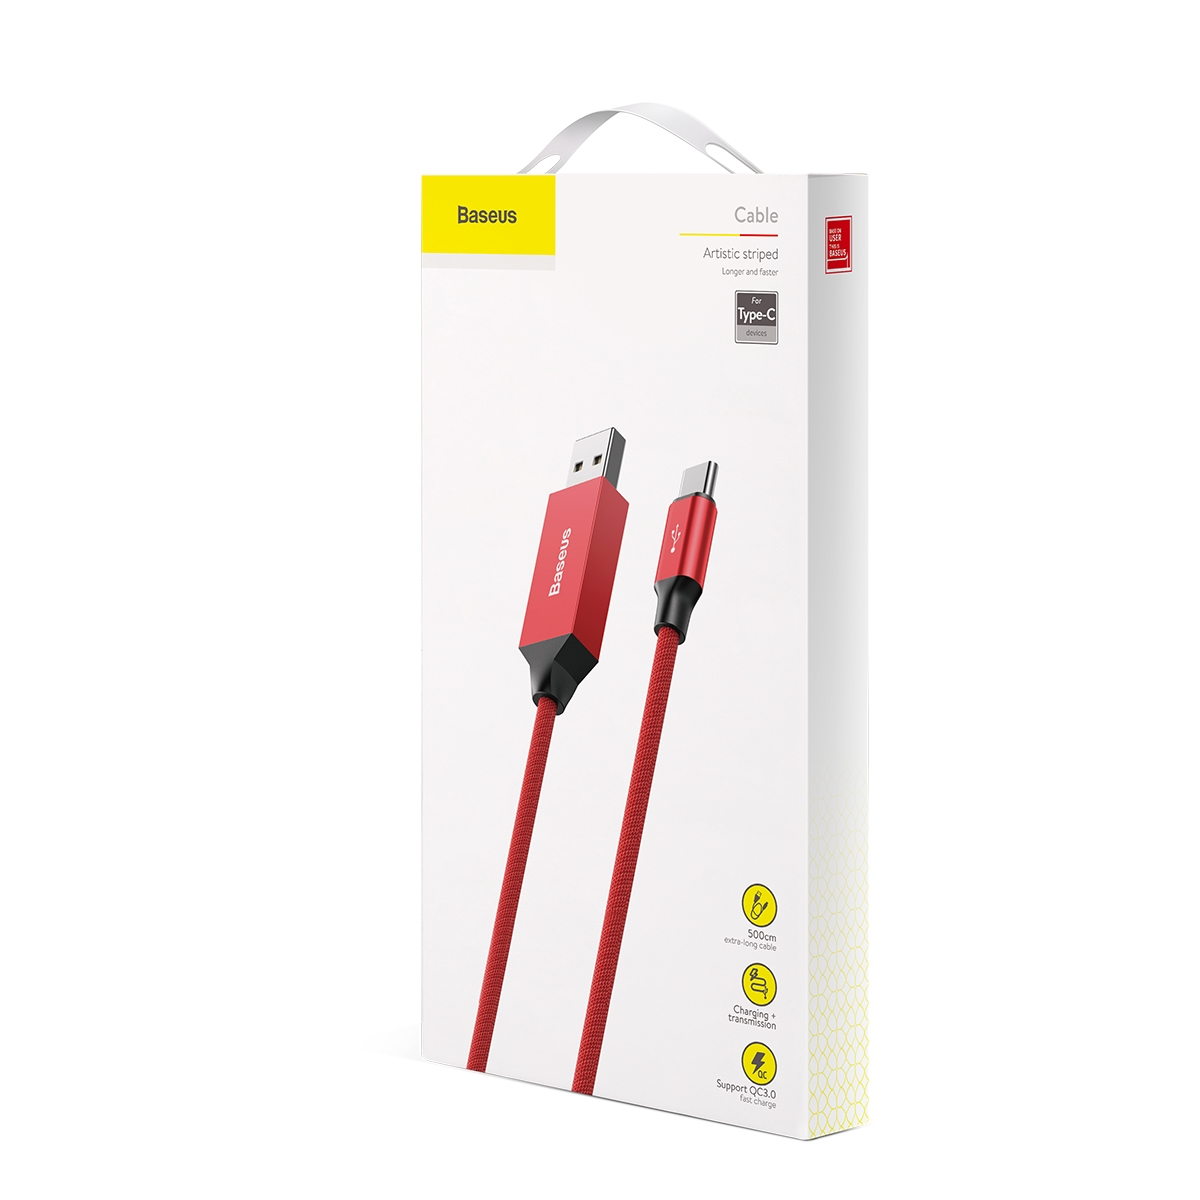 Baseus Artistic striped cable USB For Type-C 3A 5M Red CATYW-B09